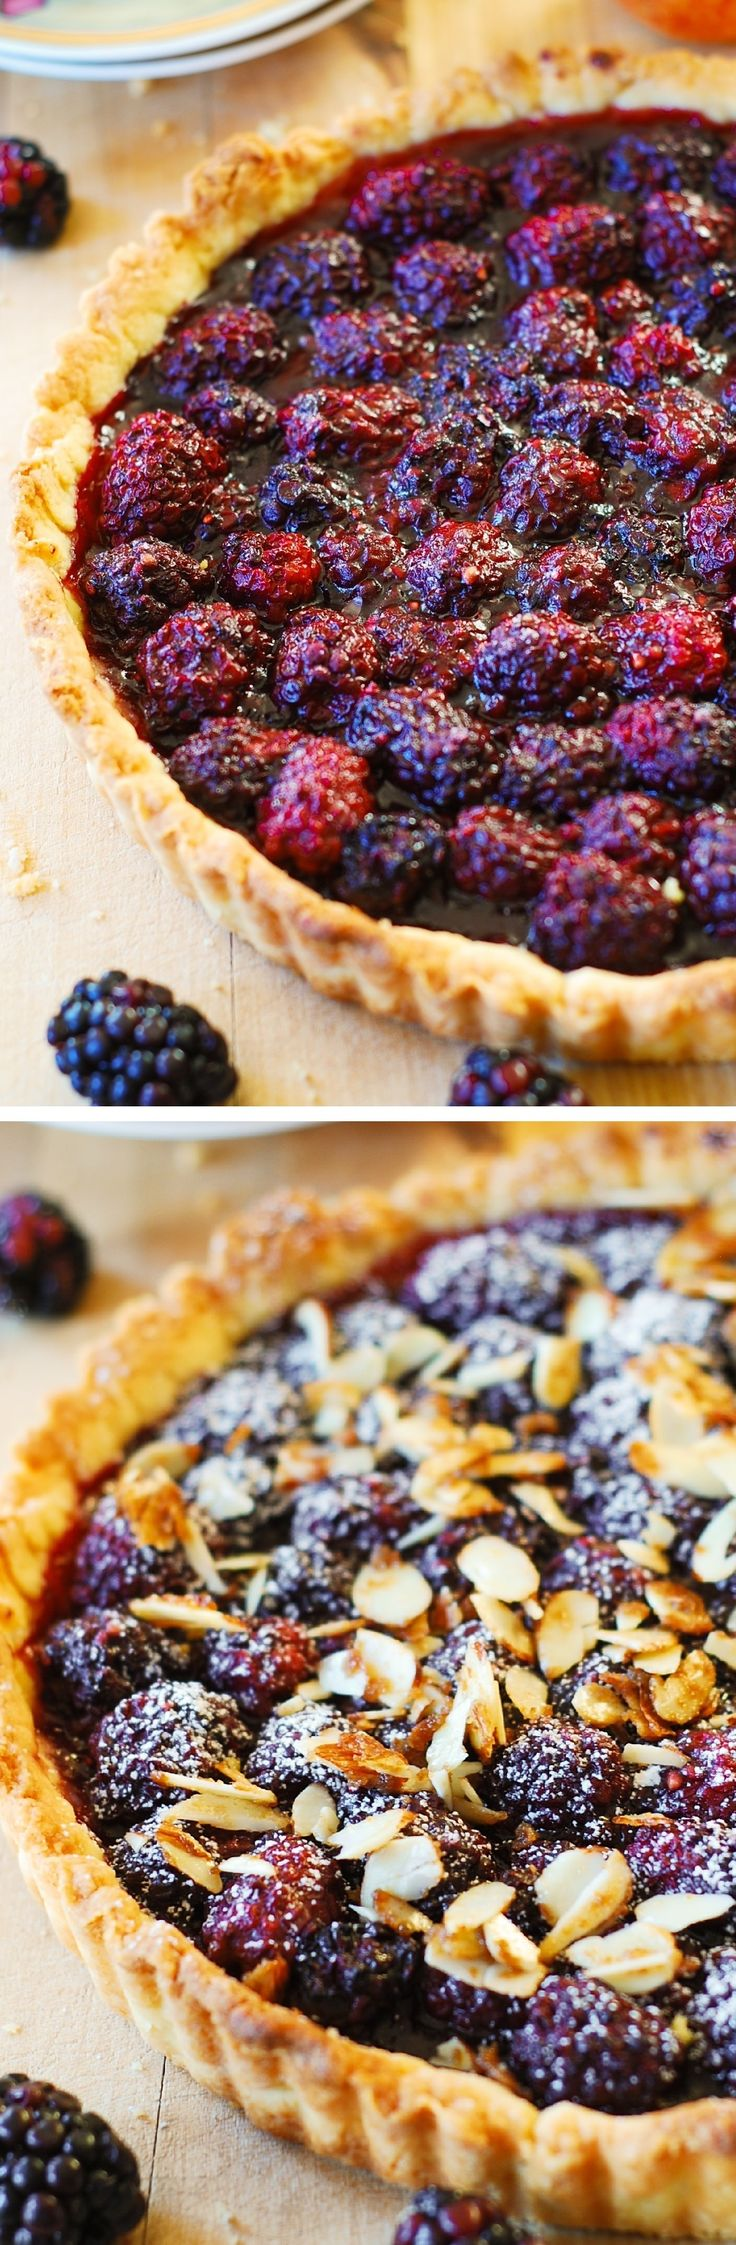 Blackberry tart made completely from scratch, in a homemade tart crust! Topped with toasted slivered almonds. So good! Perfect Summer dessert recipe!